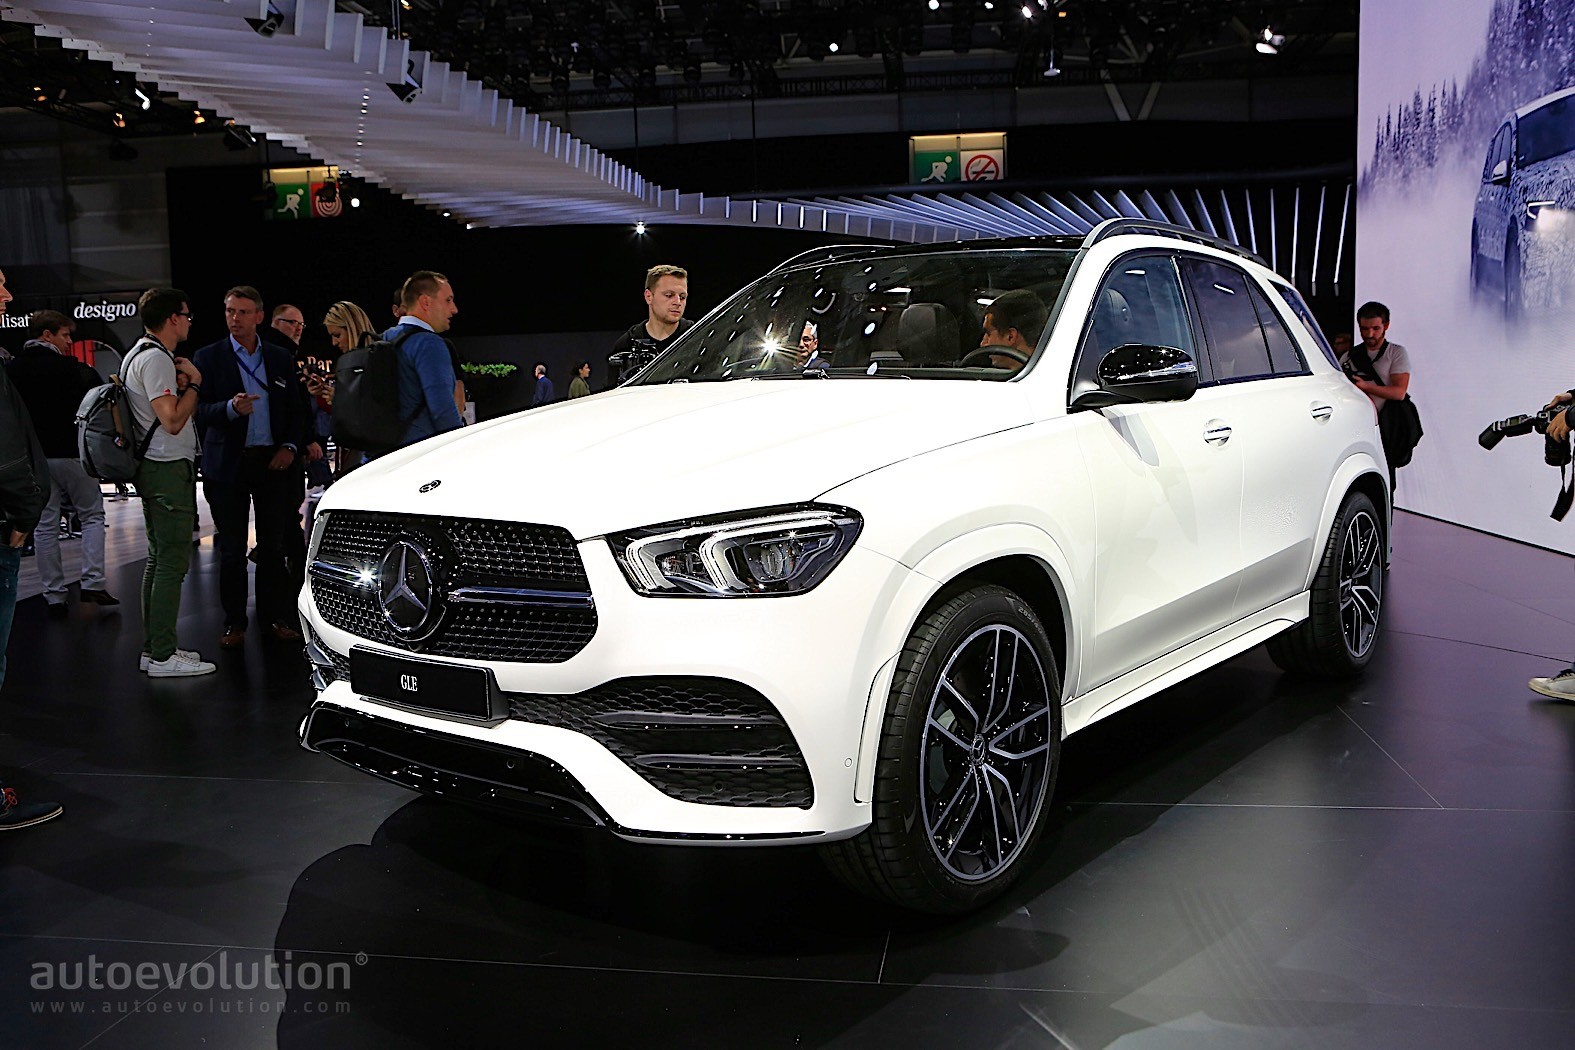 Mercedes-Benz Will Add Three New Models To Its Compact Car Range By 2020 - autoevolution